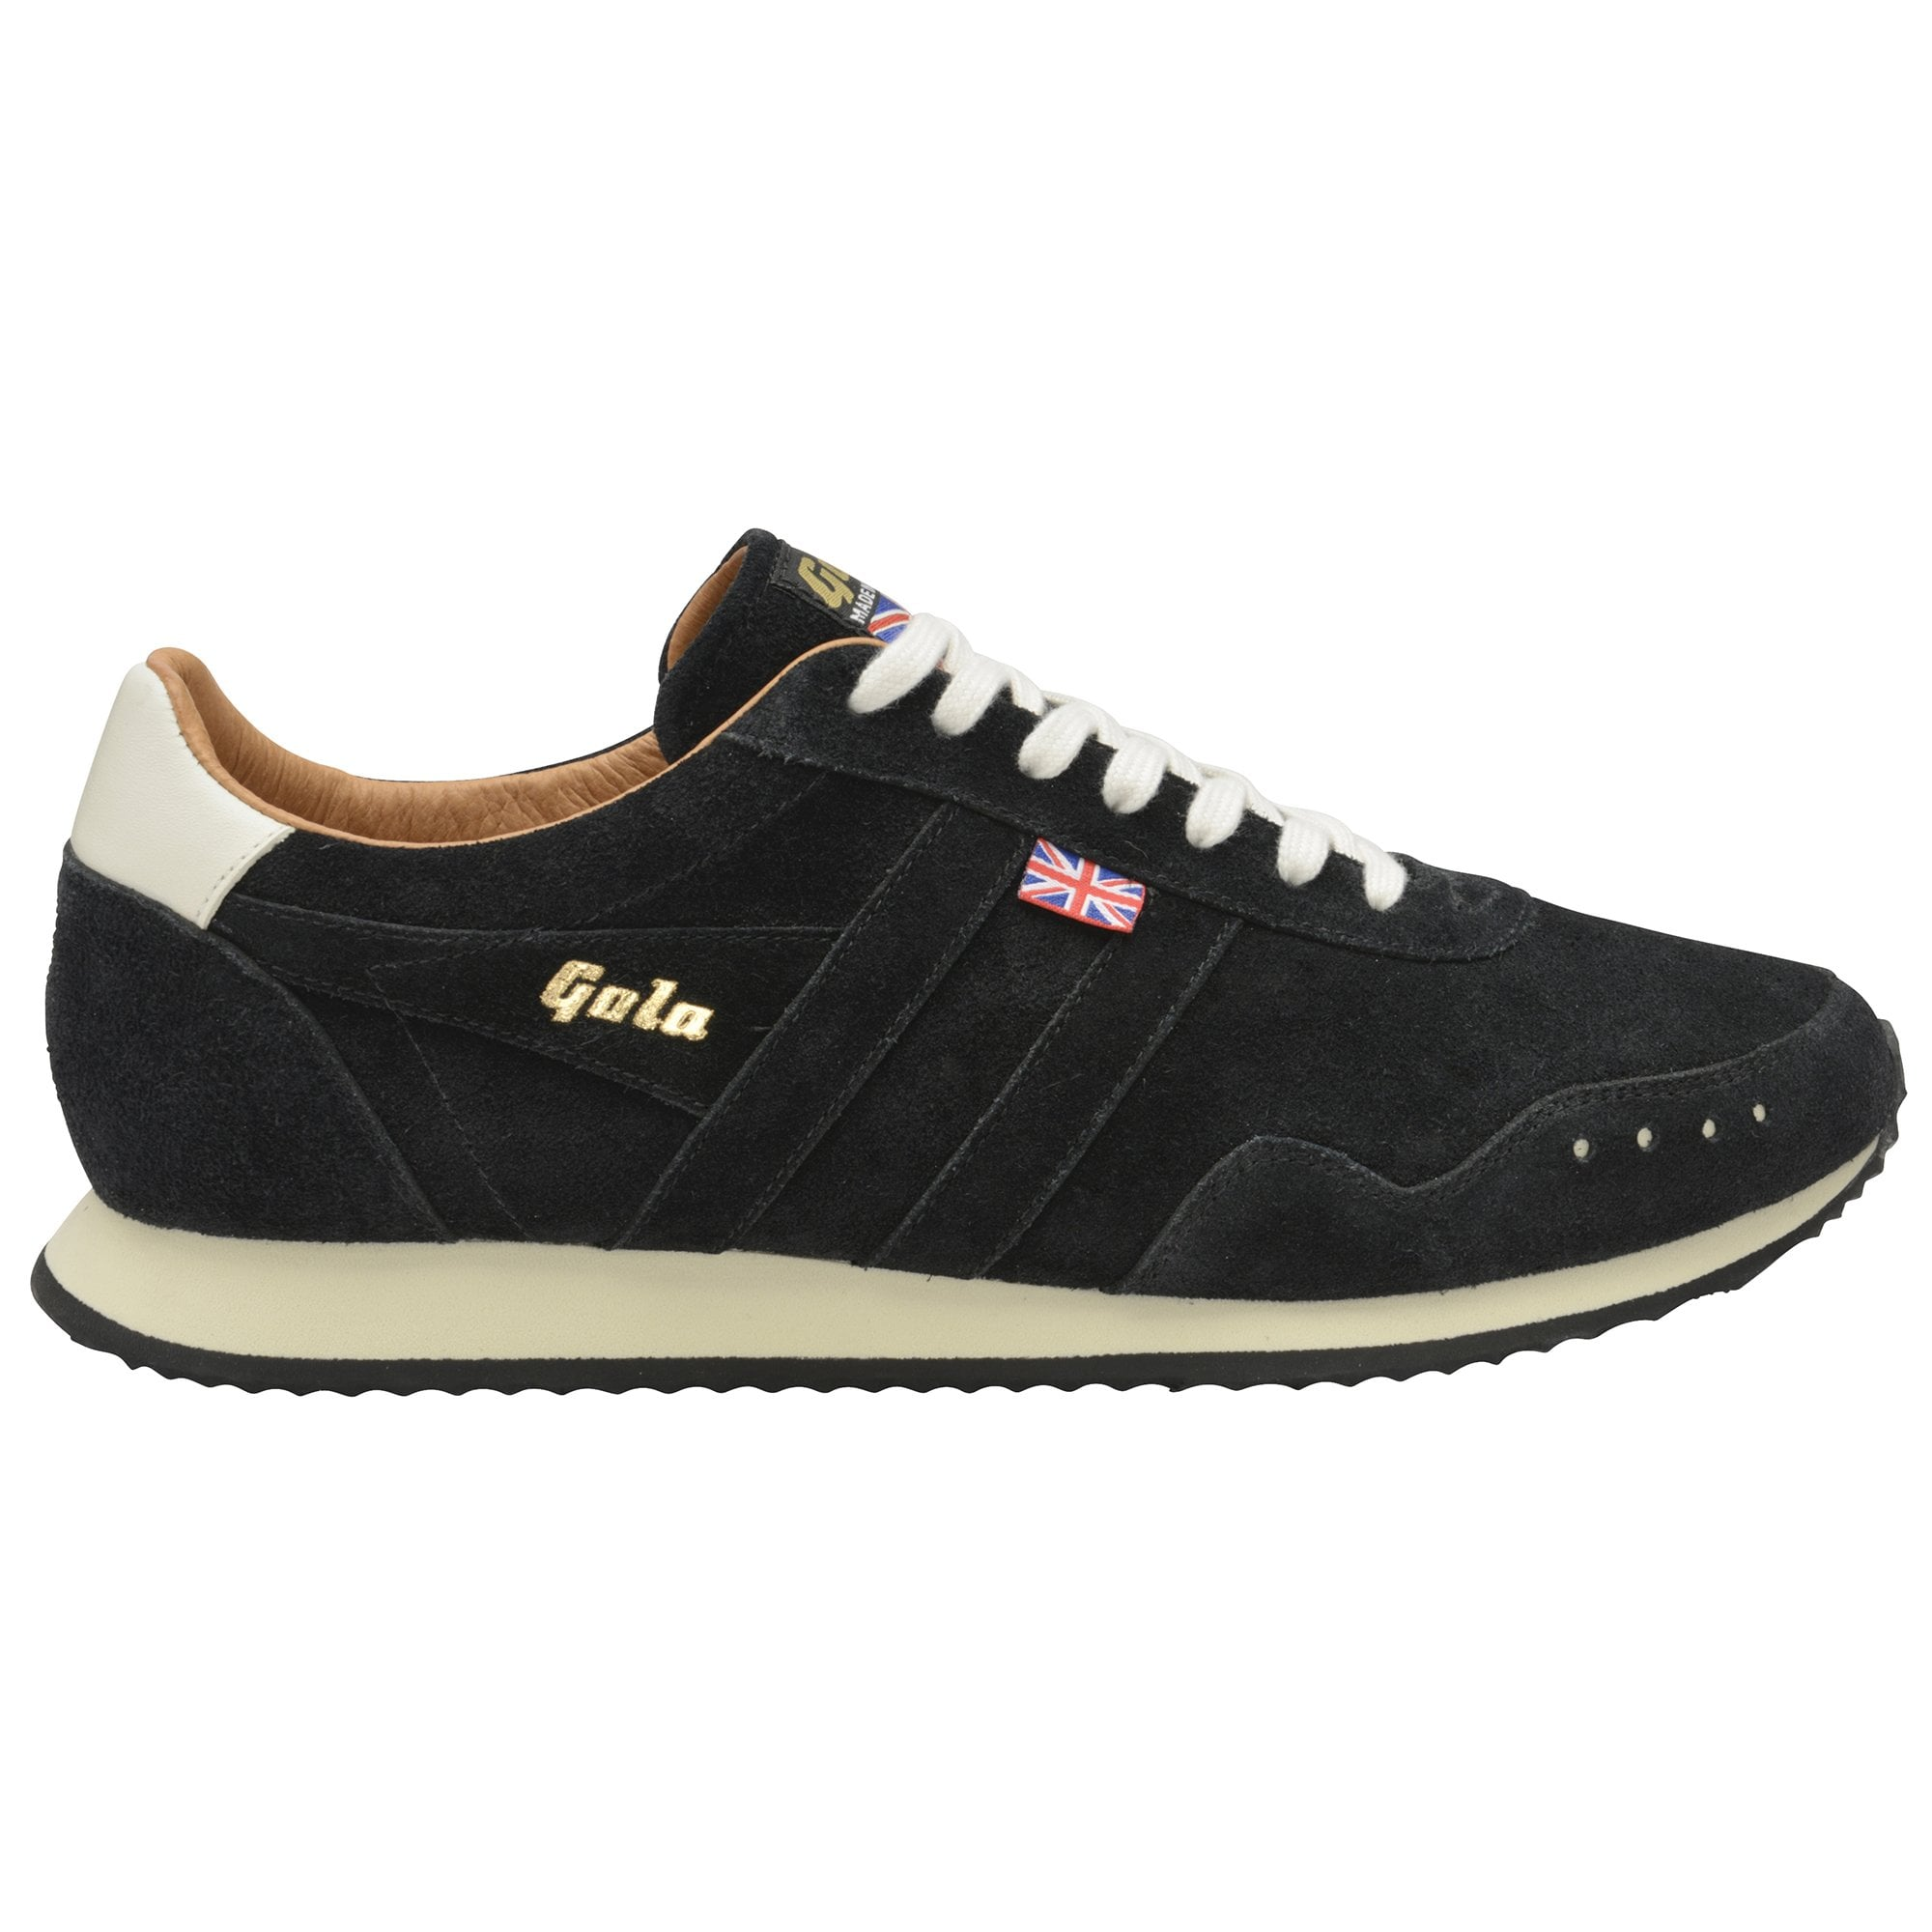 Gola Track Suede 317 trainers in black